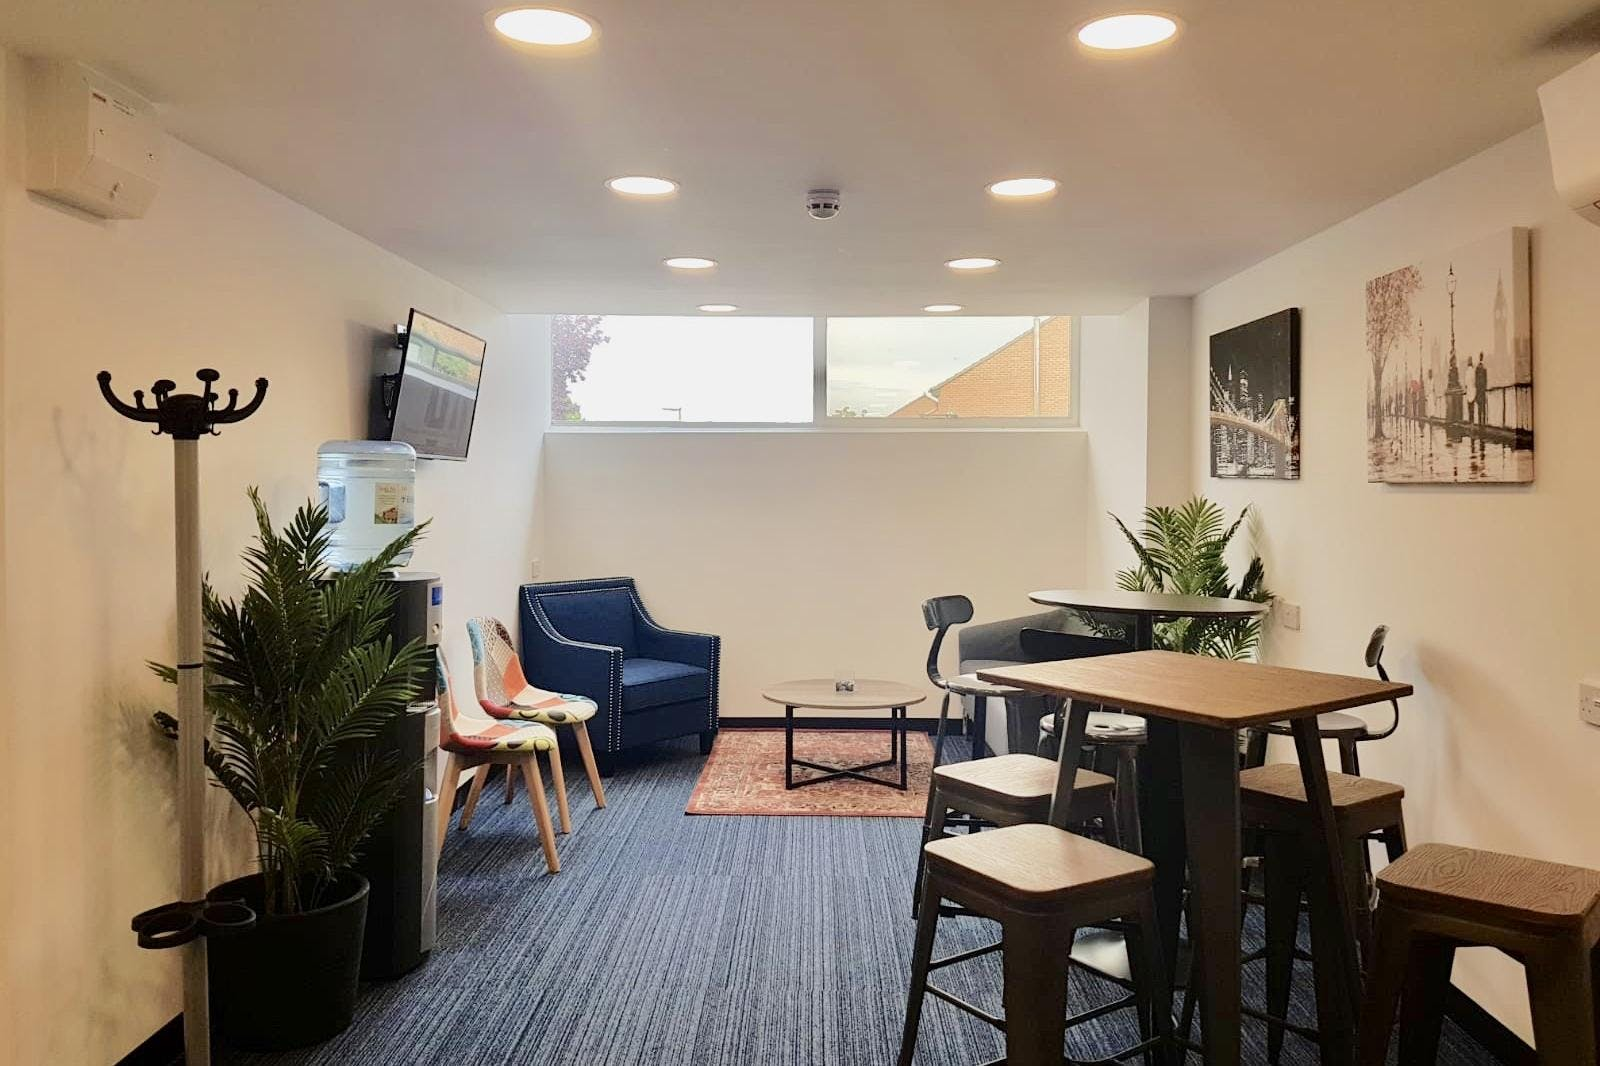 Image Court, 326-338 Molesey Road, Hersham, Offices / Serviced Offices To Let - IC3.jpg